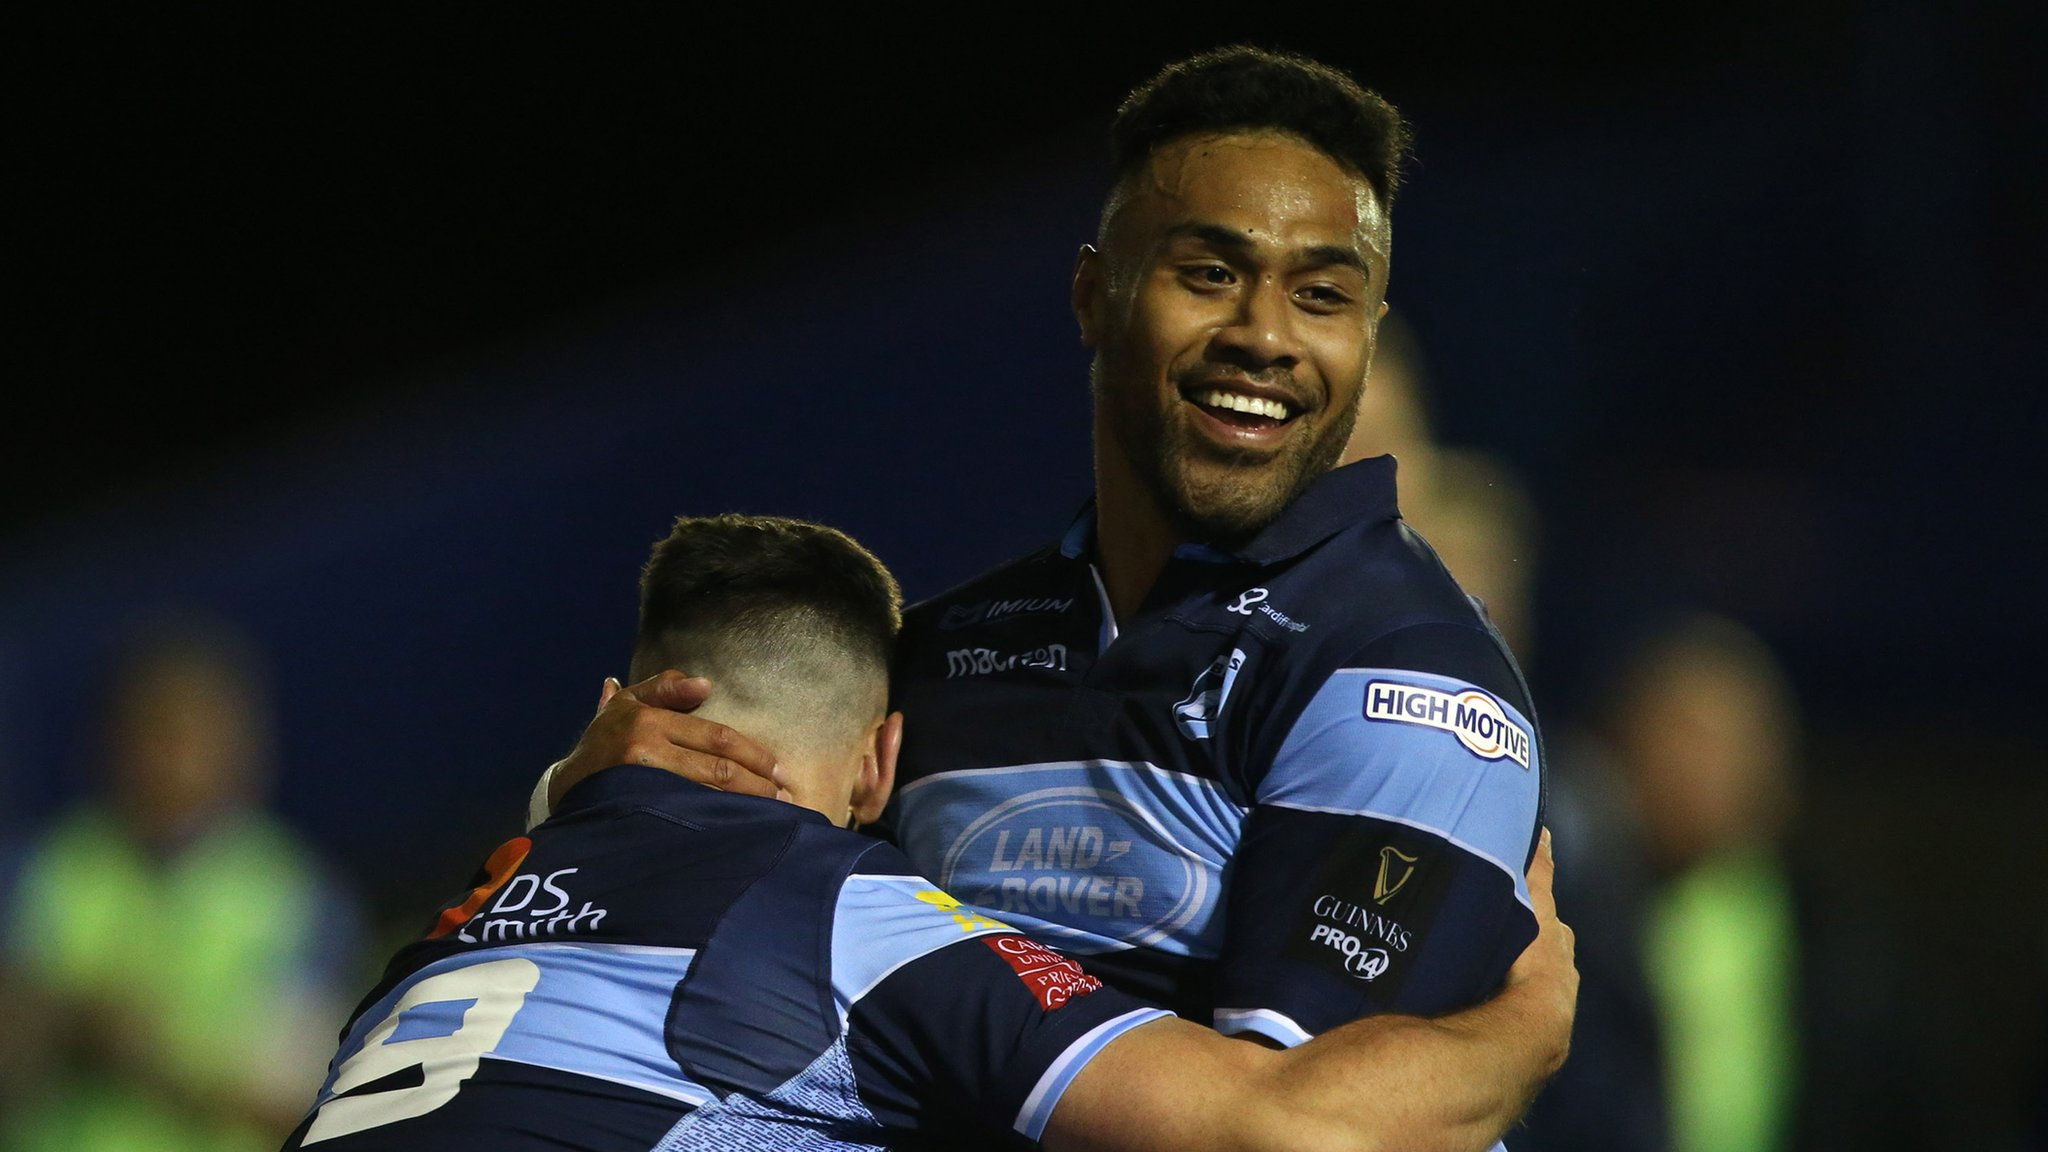 Halaholo leads Cardiff Blues to win over Munster